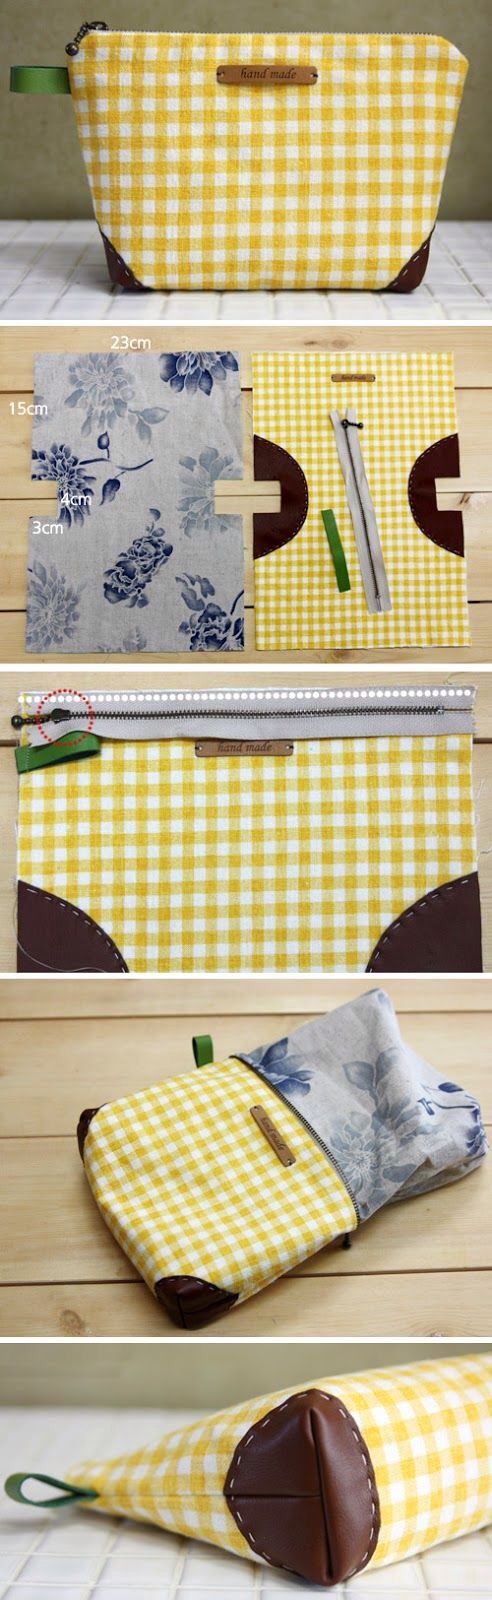 d66fa45f03d1720369253cead3dff37f.jpg (492×1600) | SEWING PROJECTS ...